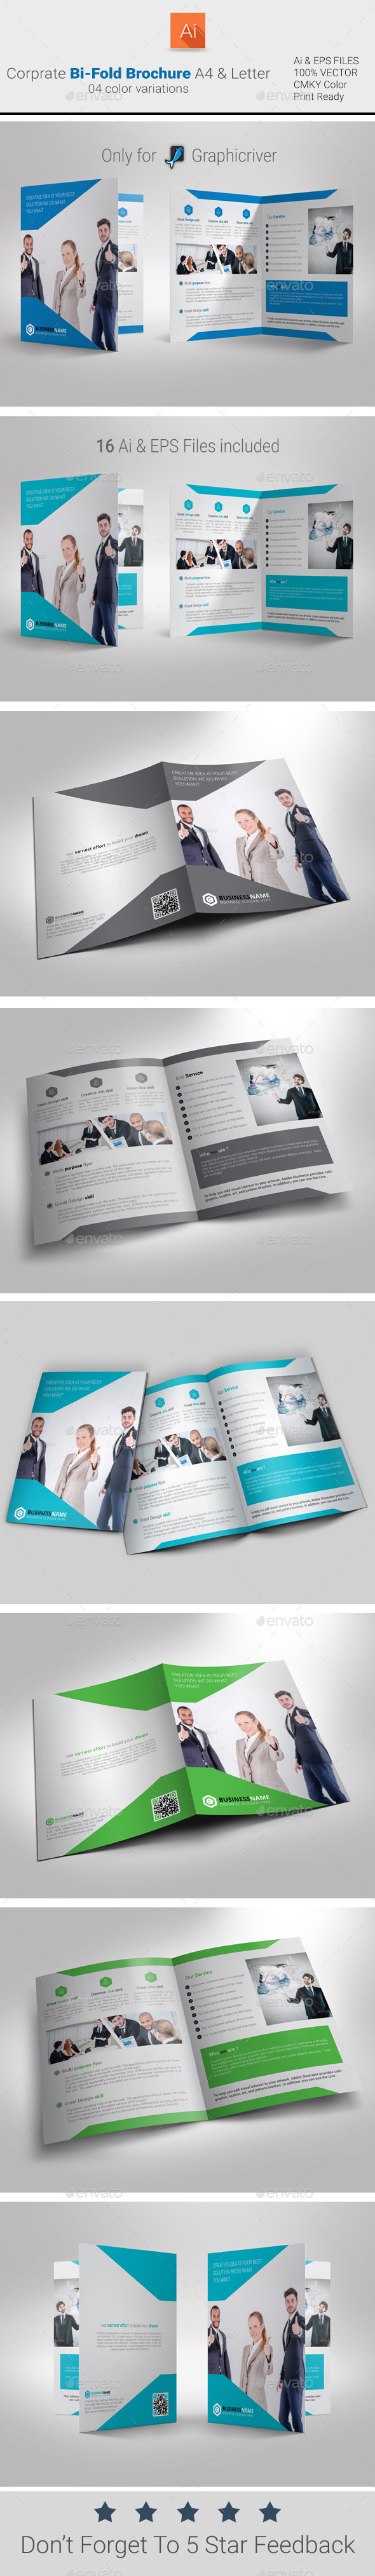 GraphicRiver Corporate Bi-Fold Brochure 9422453